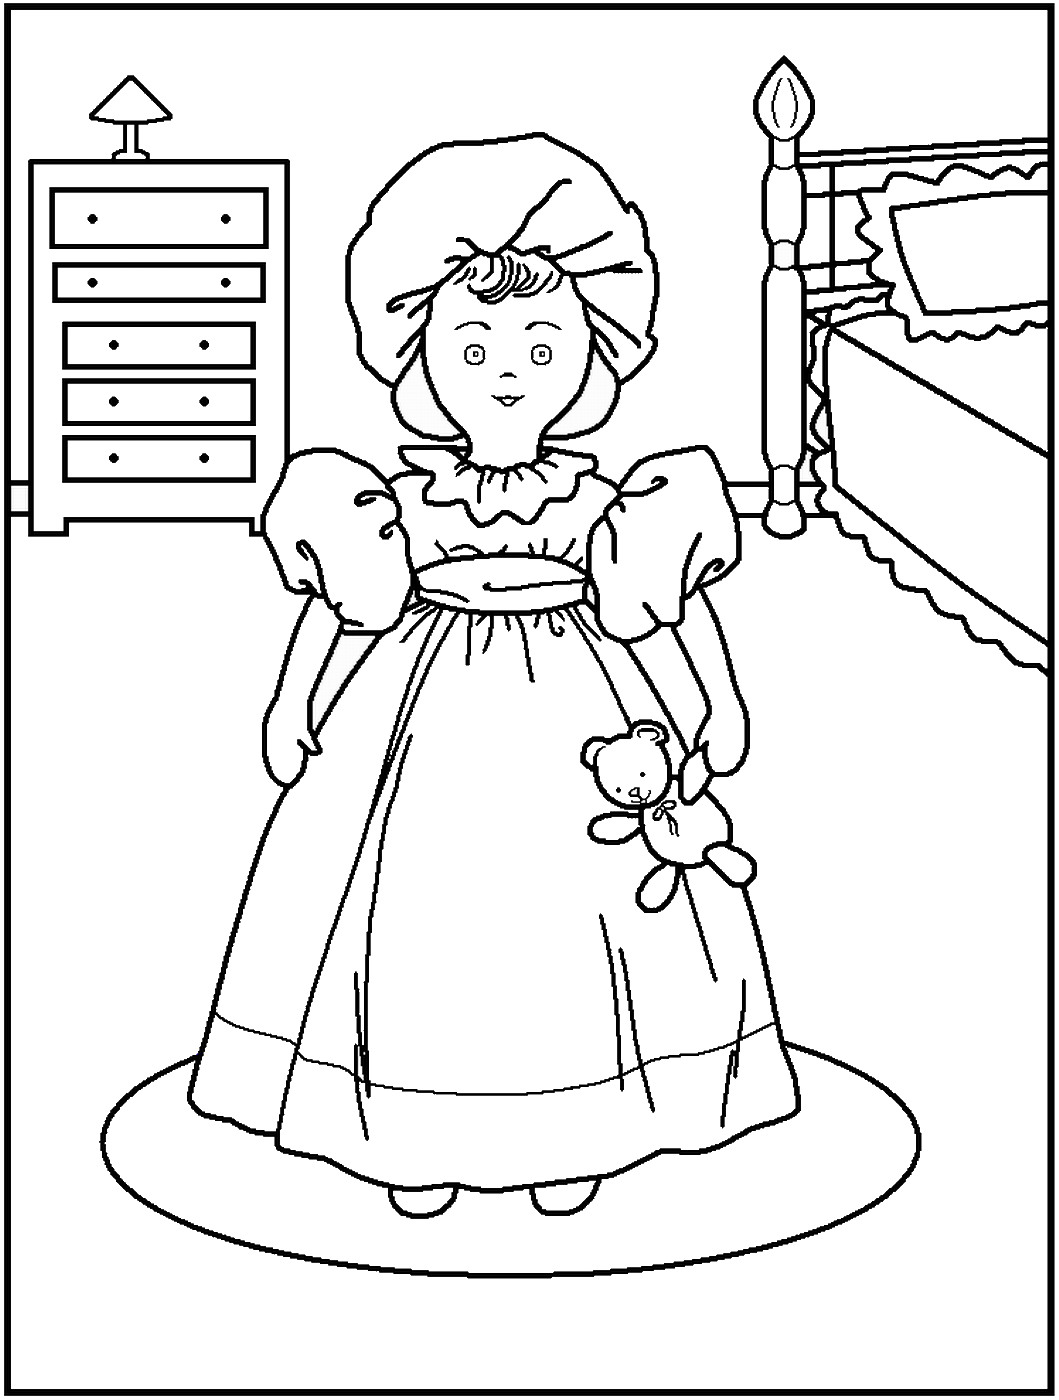 dolls colouring pages dolls coloring pages colouring pages dolls 1 1